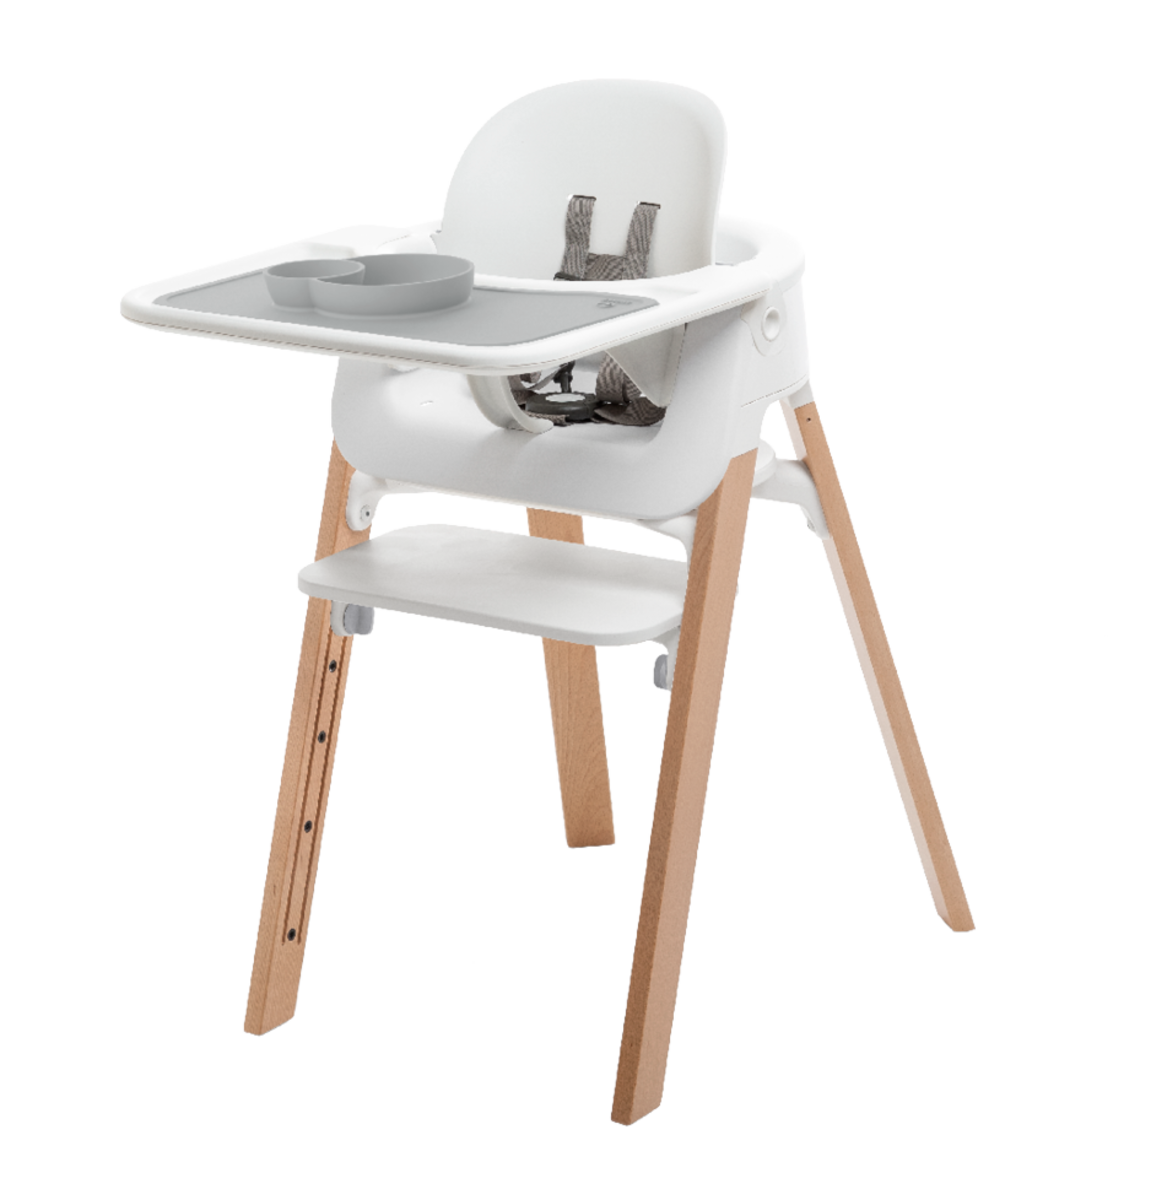 Miraculous High Chairs Seating Bouncers For Babies From Stokke Ibusinesslaw Wood Chair Design Ideas Ibusinesslaworg